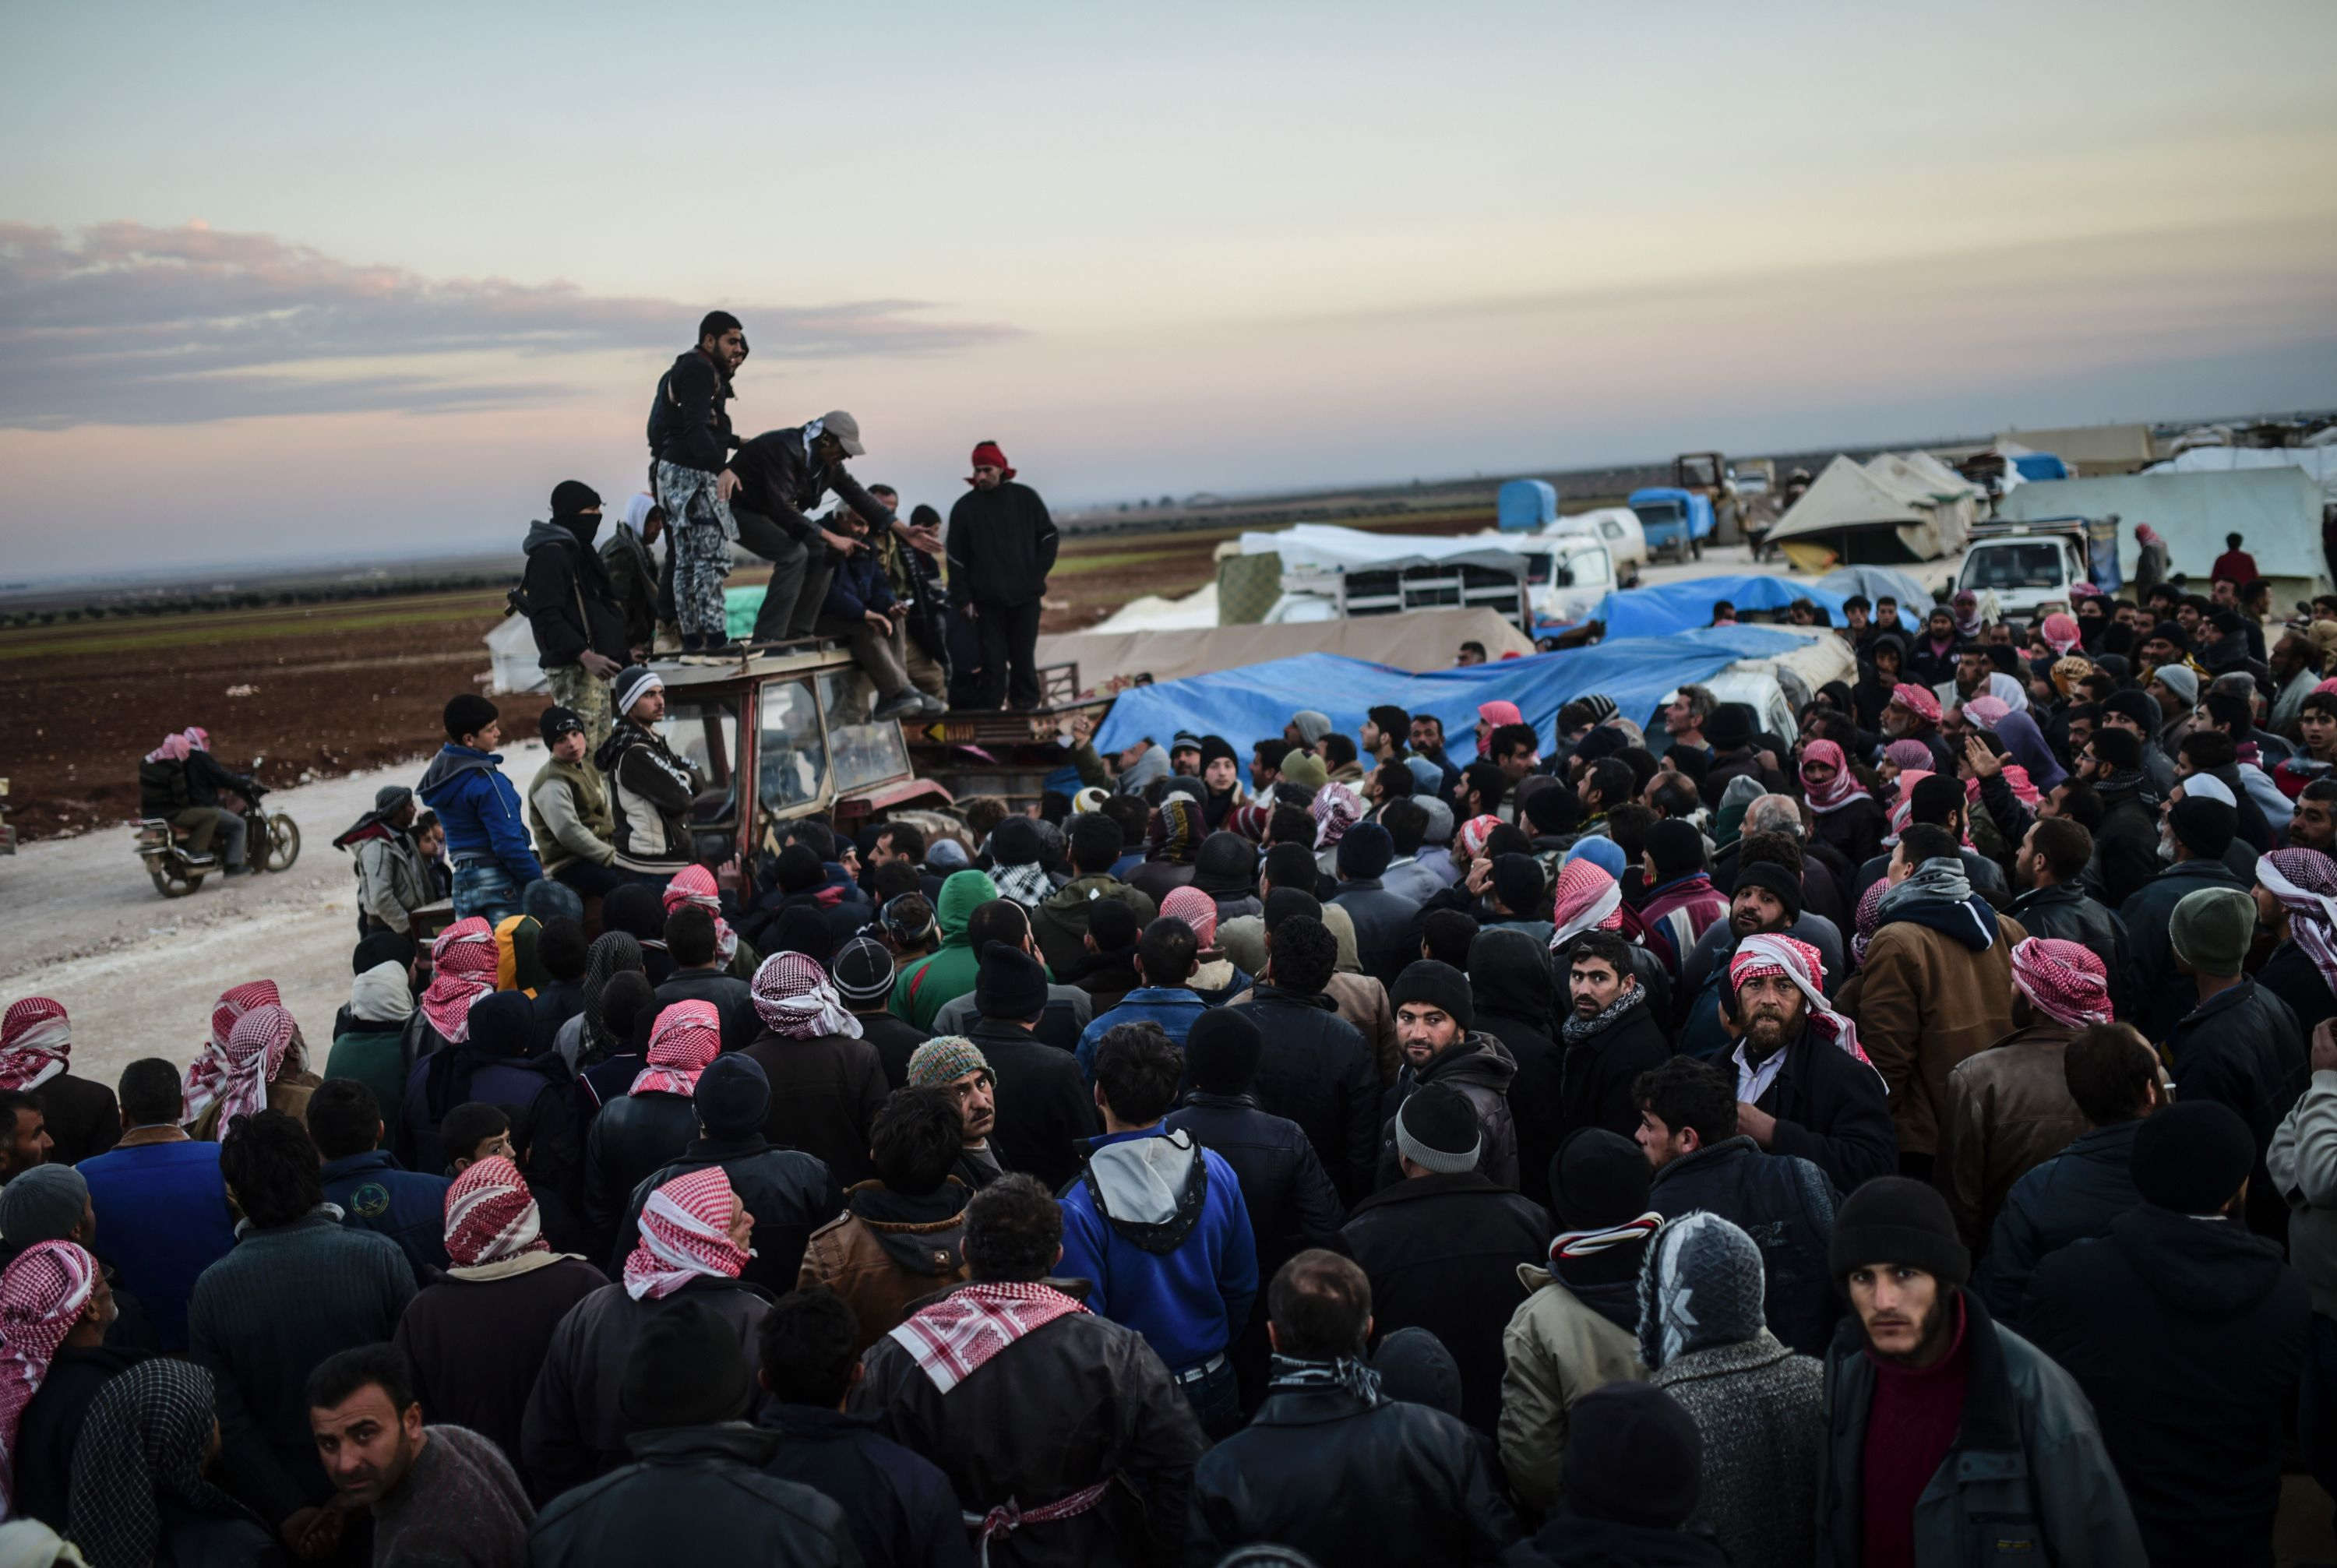 Folly of Treating All Refugees as Would-Be Terrorists Solves Neither Problem